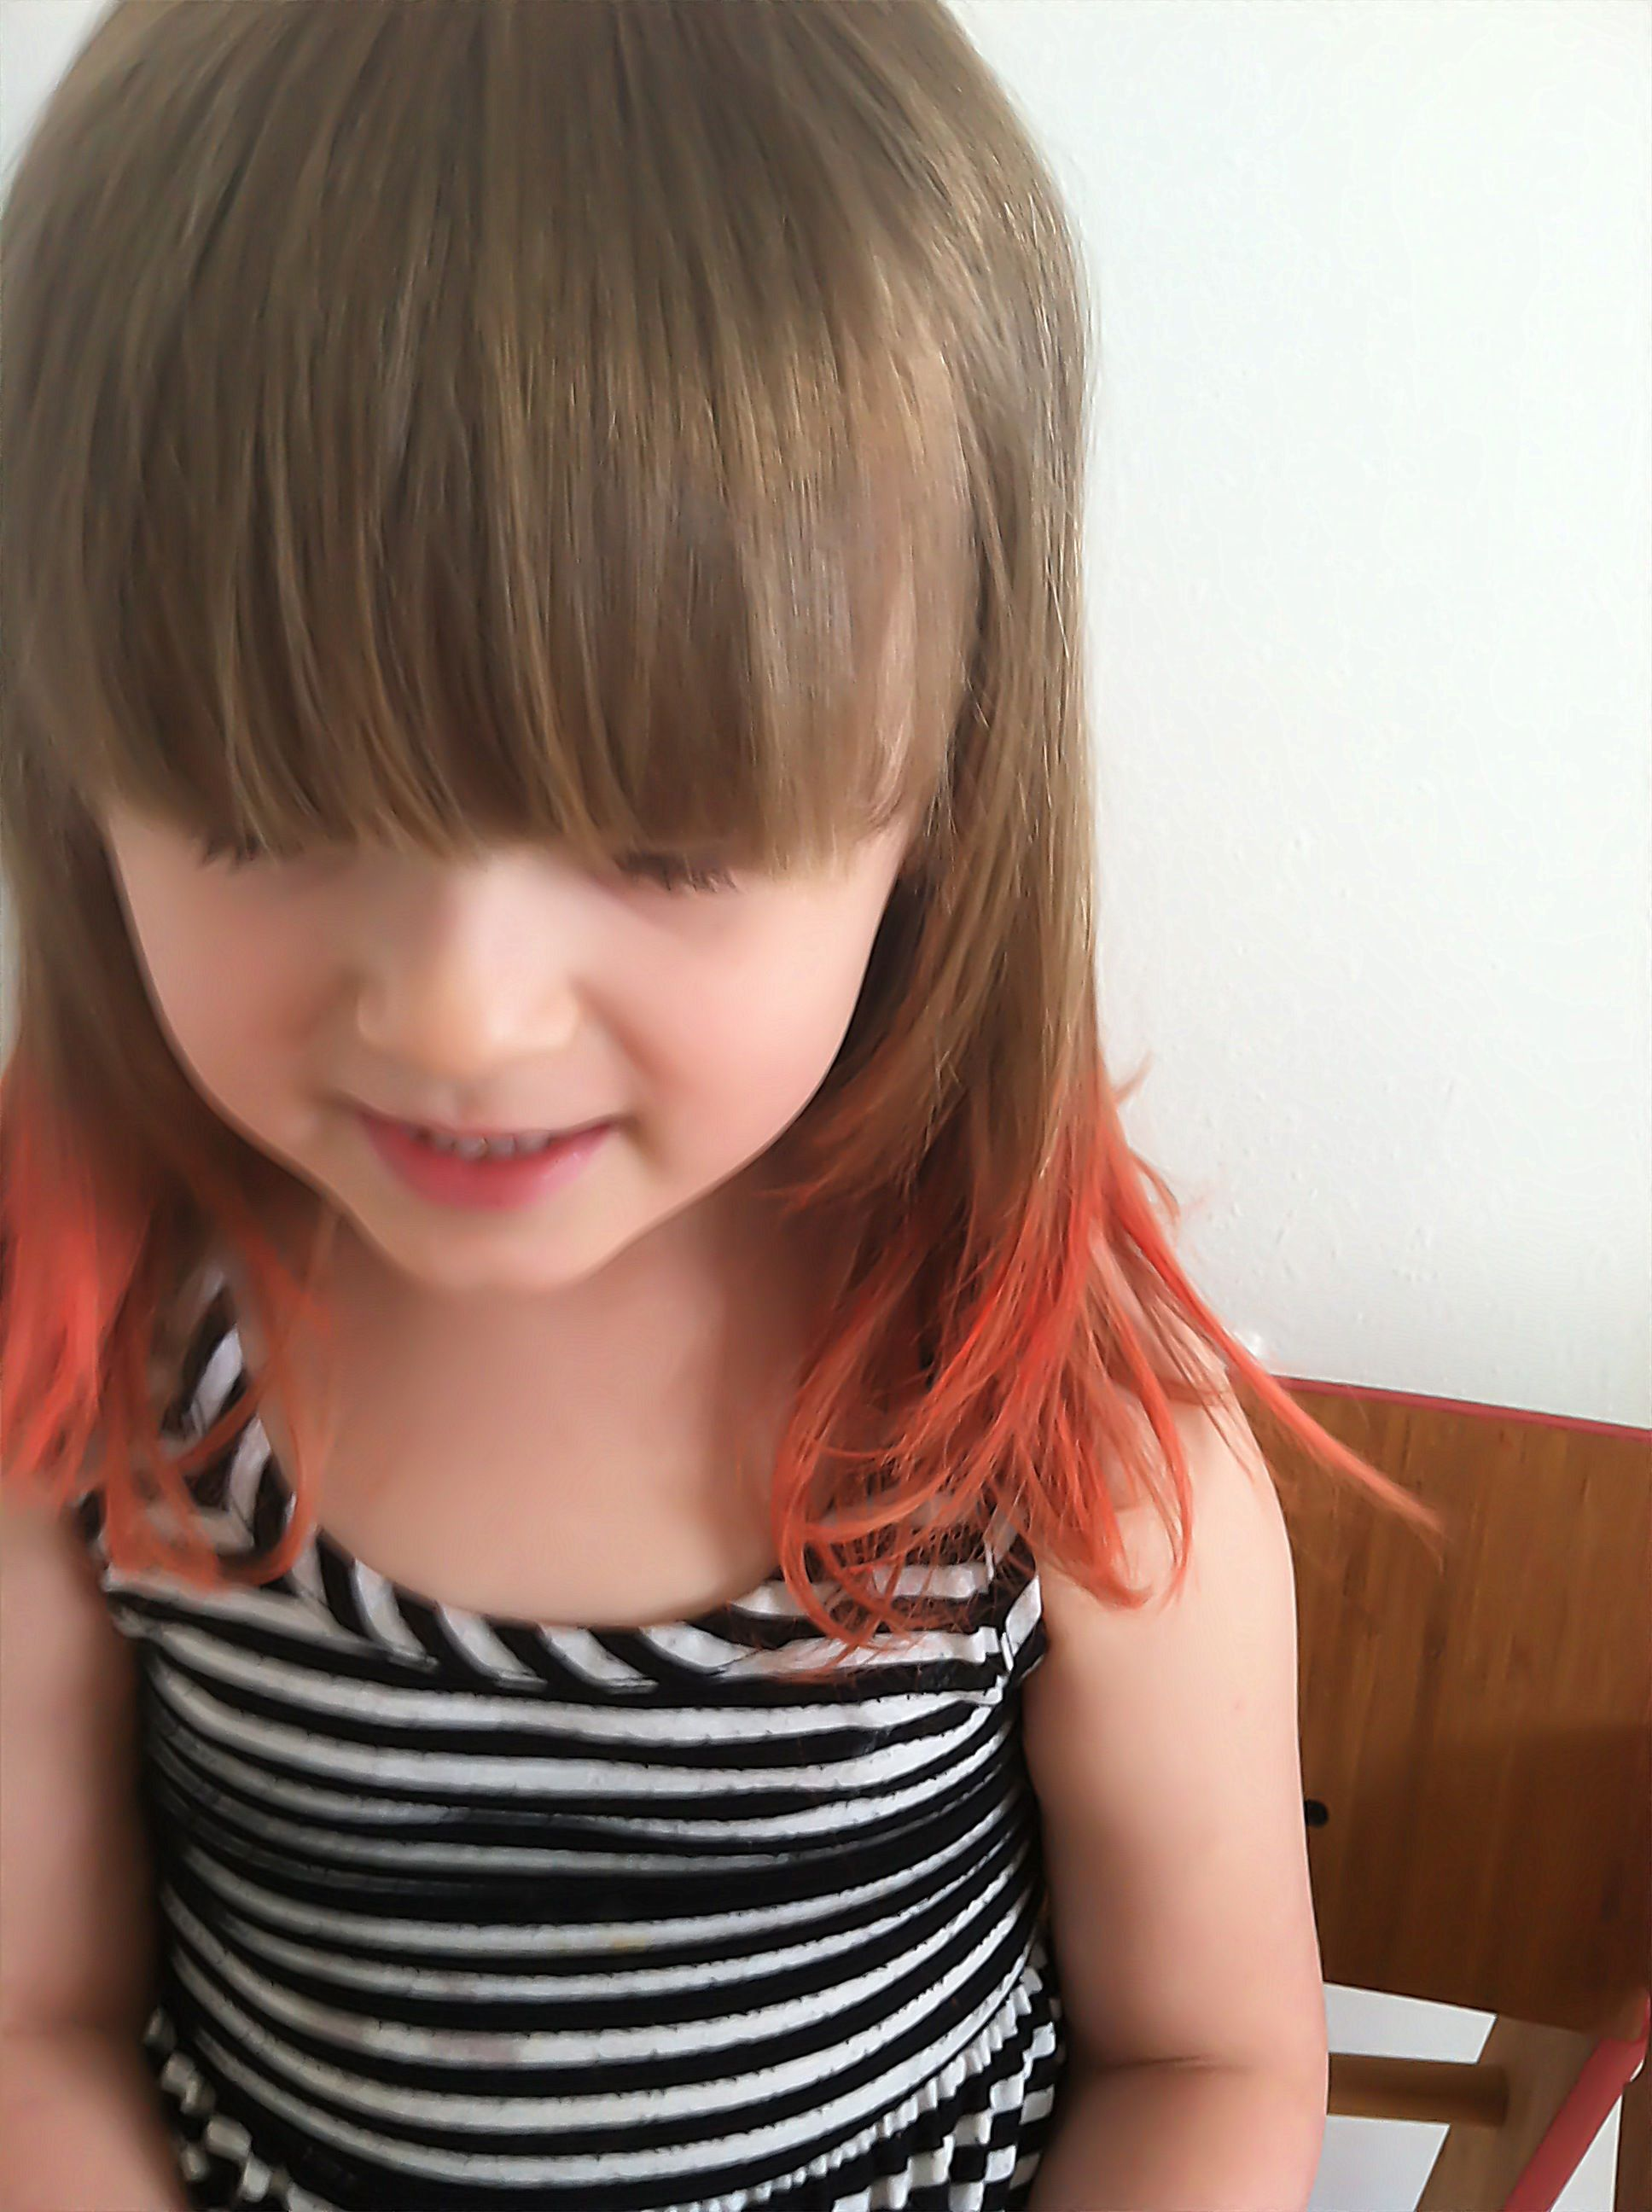 Diy Hair Temporary Color For Kids Anderson